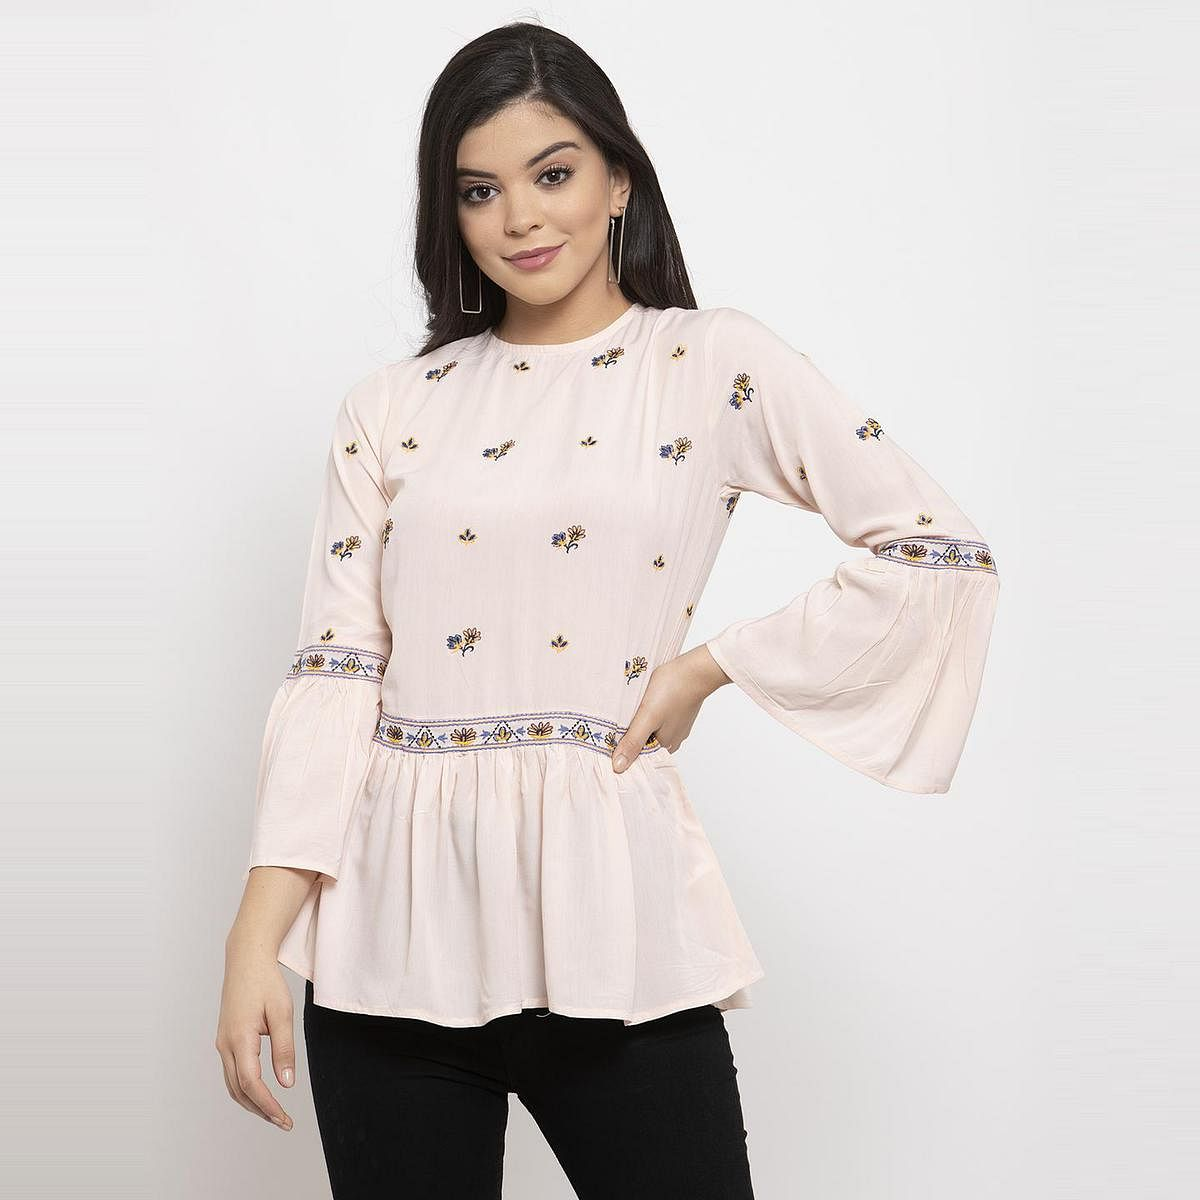 Label Regalia - Light Pink Colored Casual Embroidered Polyester Top